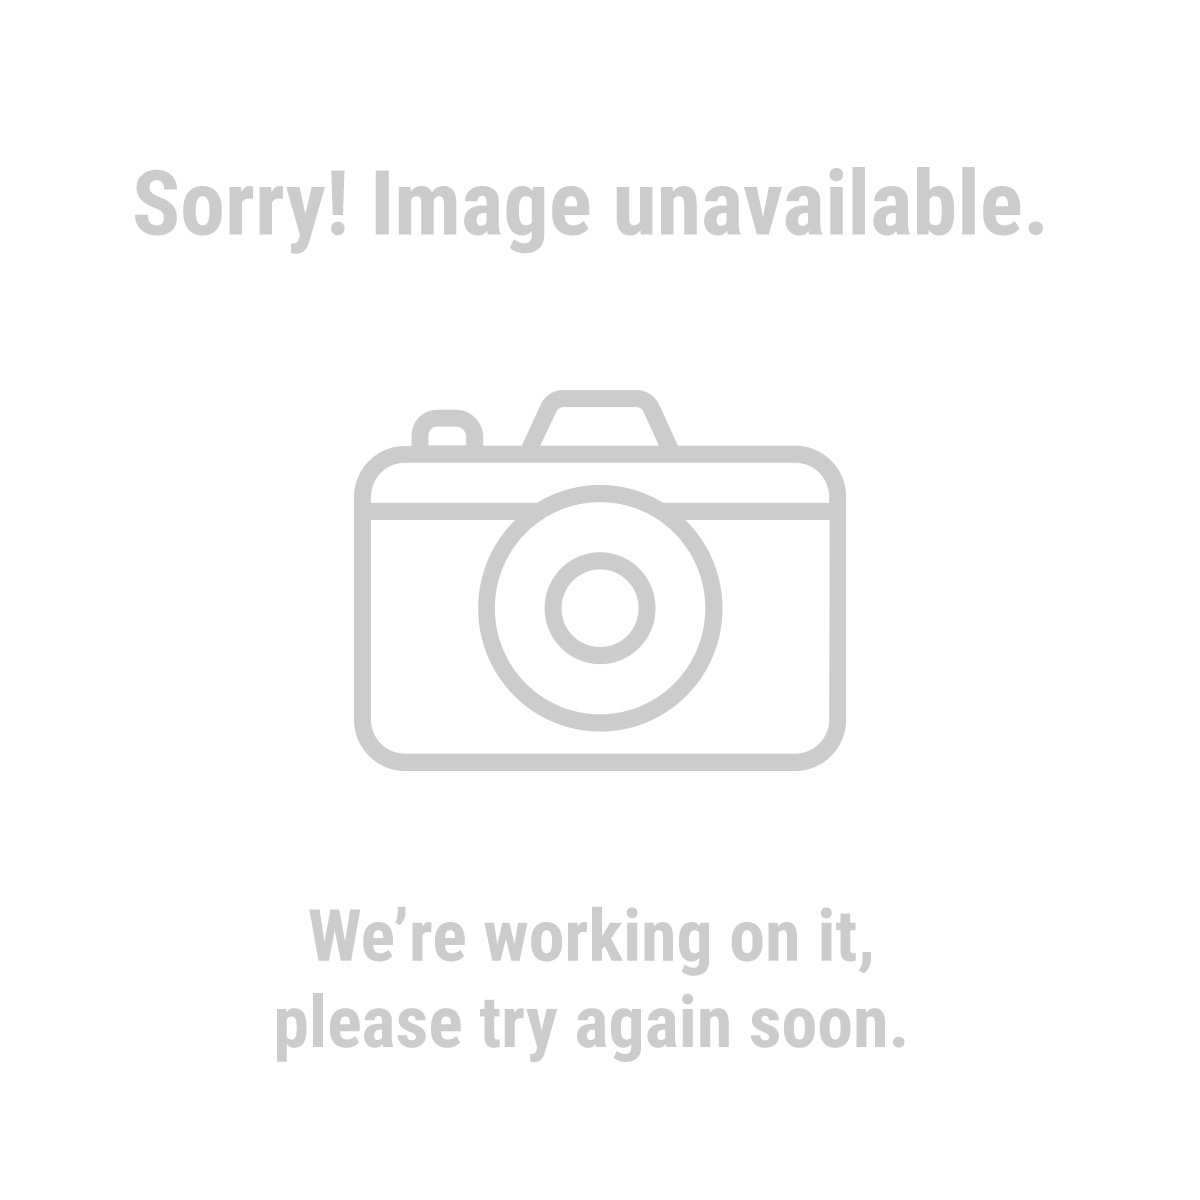 Diamond Life 98862 Replacement Wheels for the 120 Volt Circular Saw Blade Sharpener